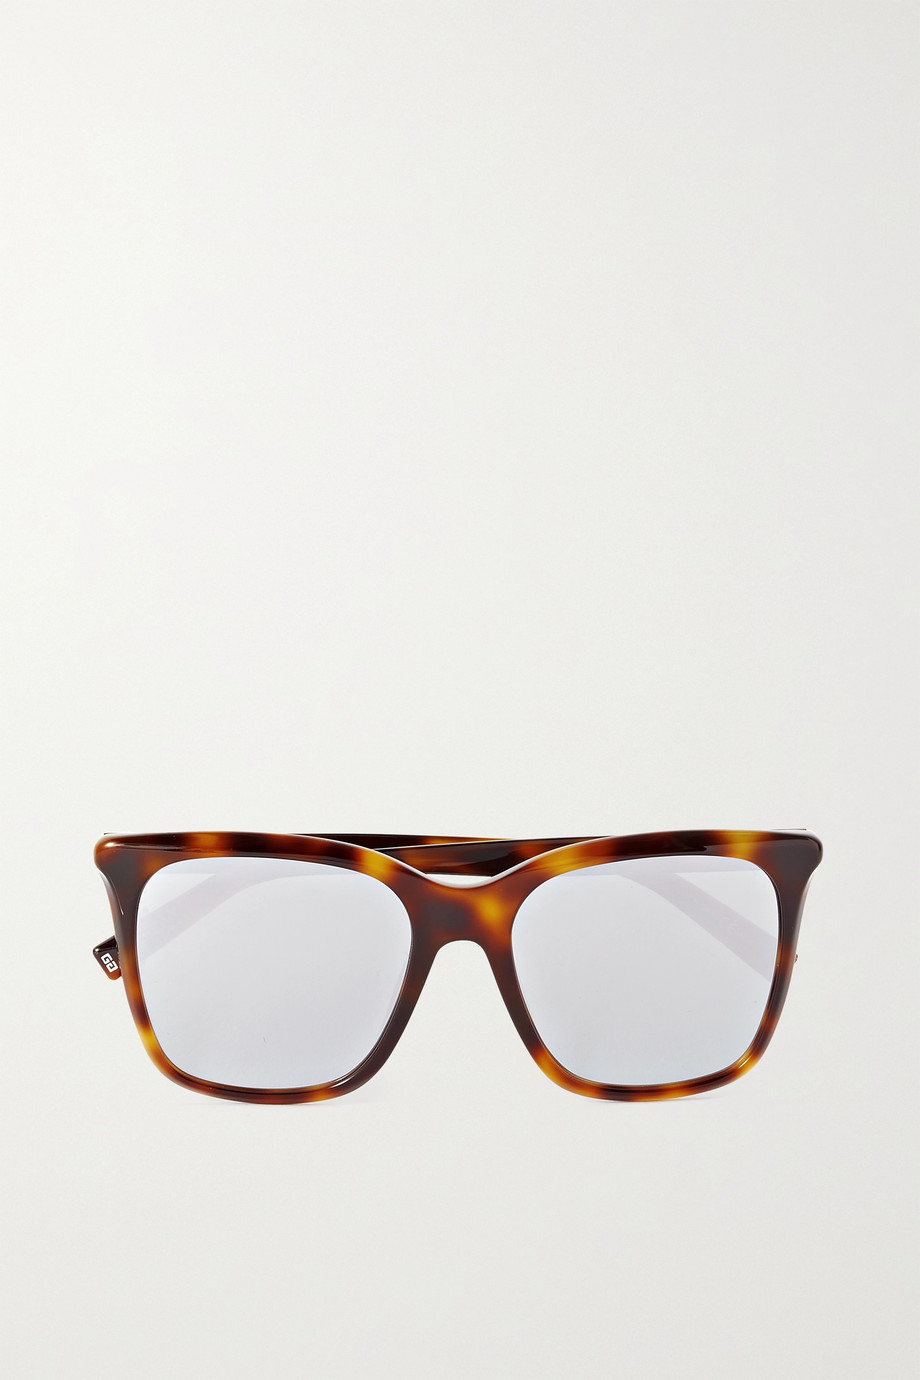 GIVENCHY D-frame tortoiseshell acetate mirrored sunglasses